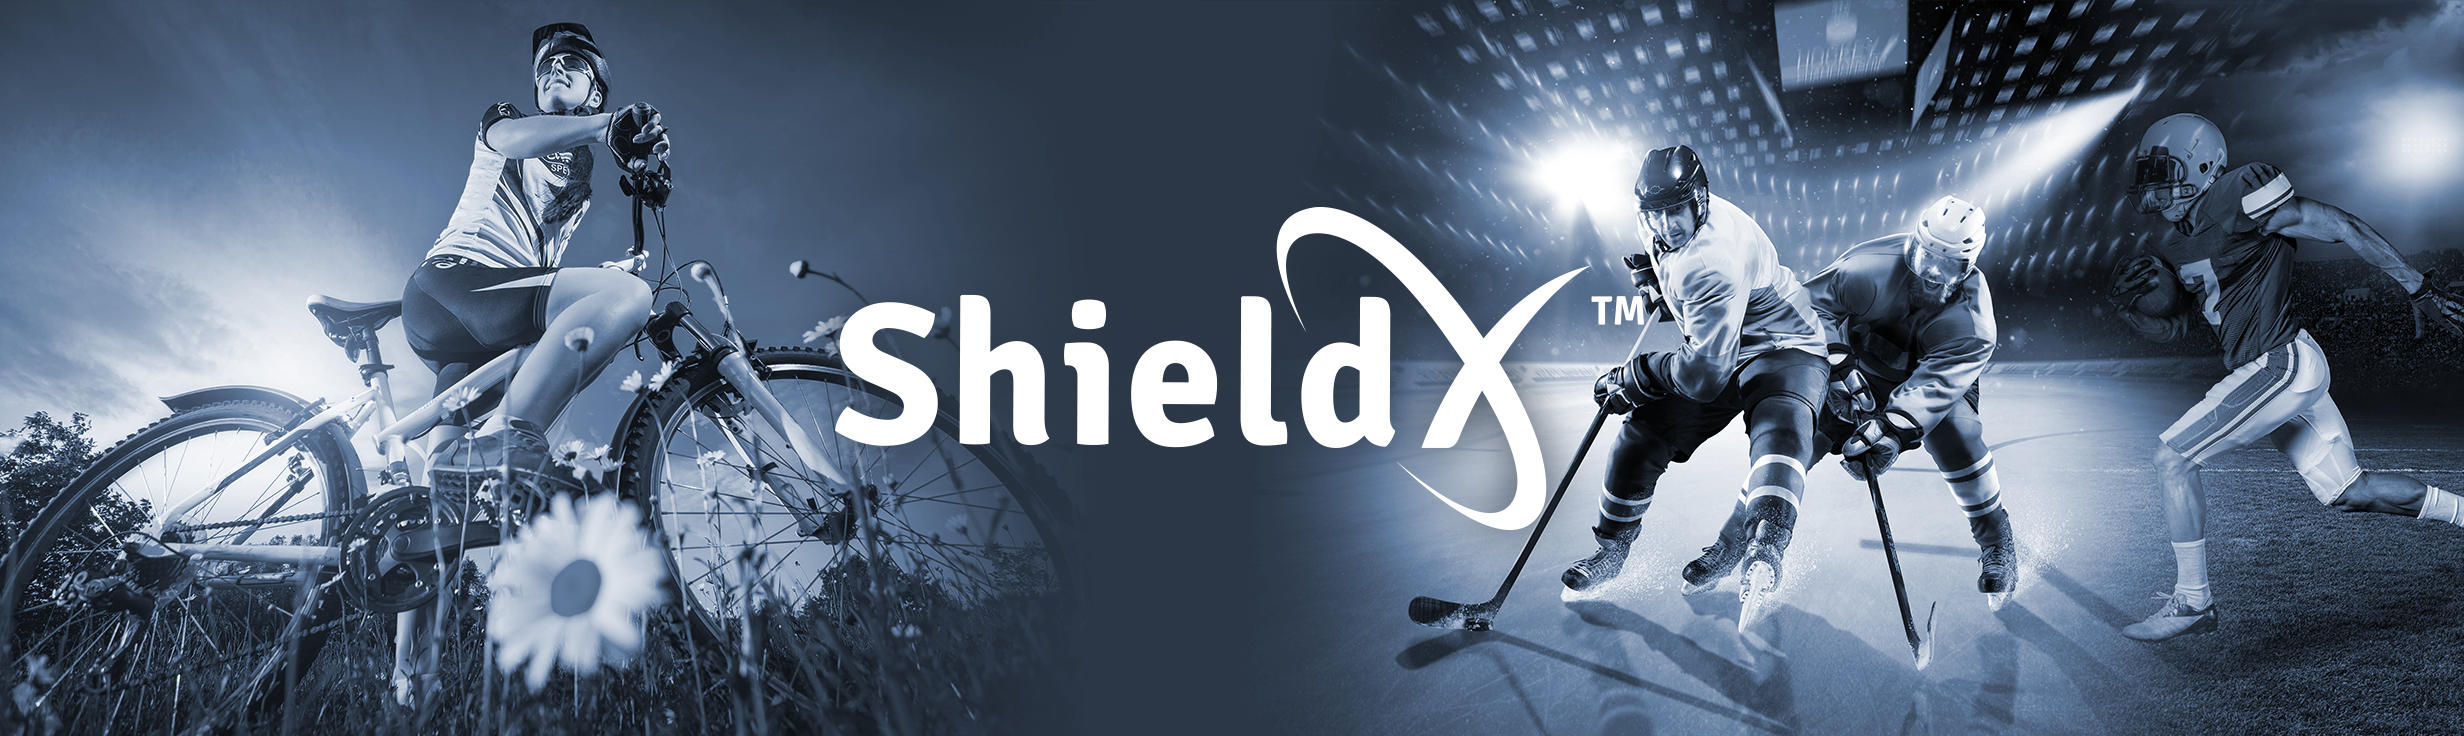 ShieldX has a variety of applications.